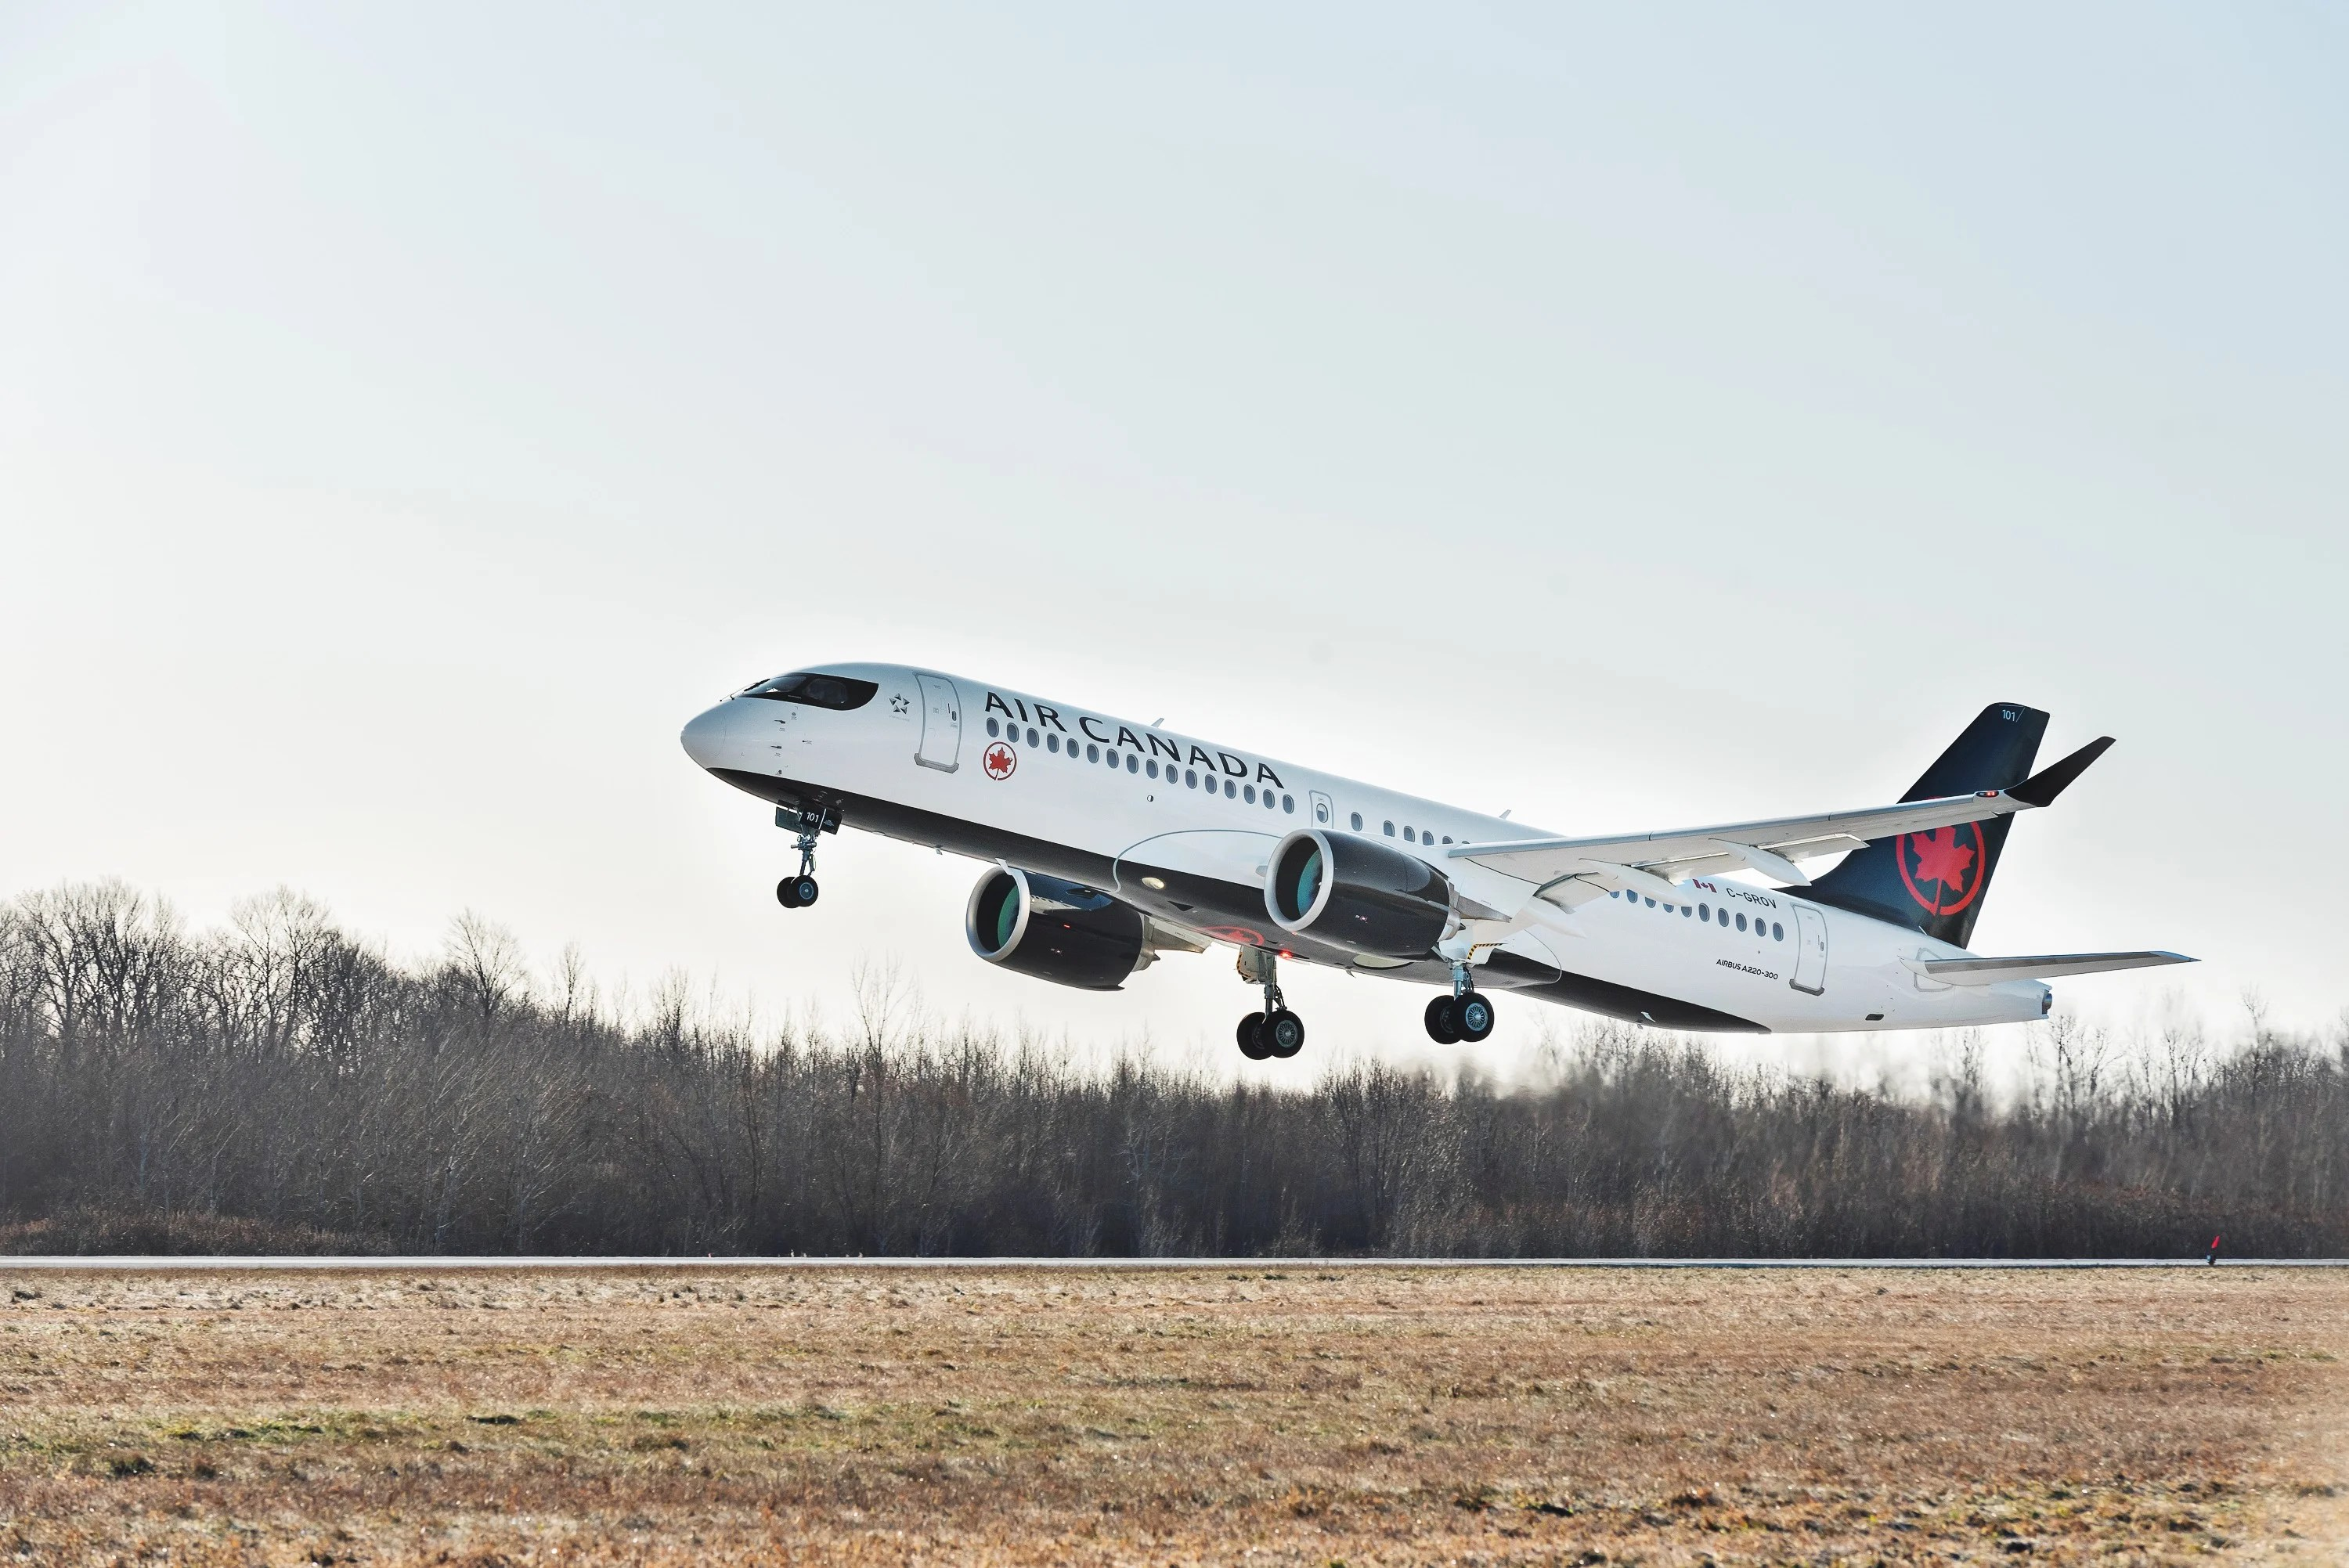 Air Canada's Airbus A220 made a surprise visit to New York LaGuardia